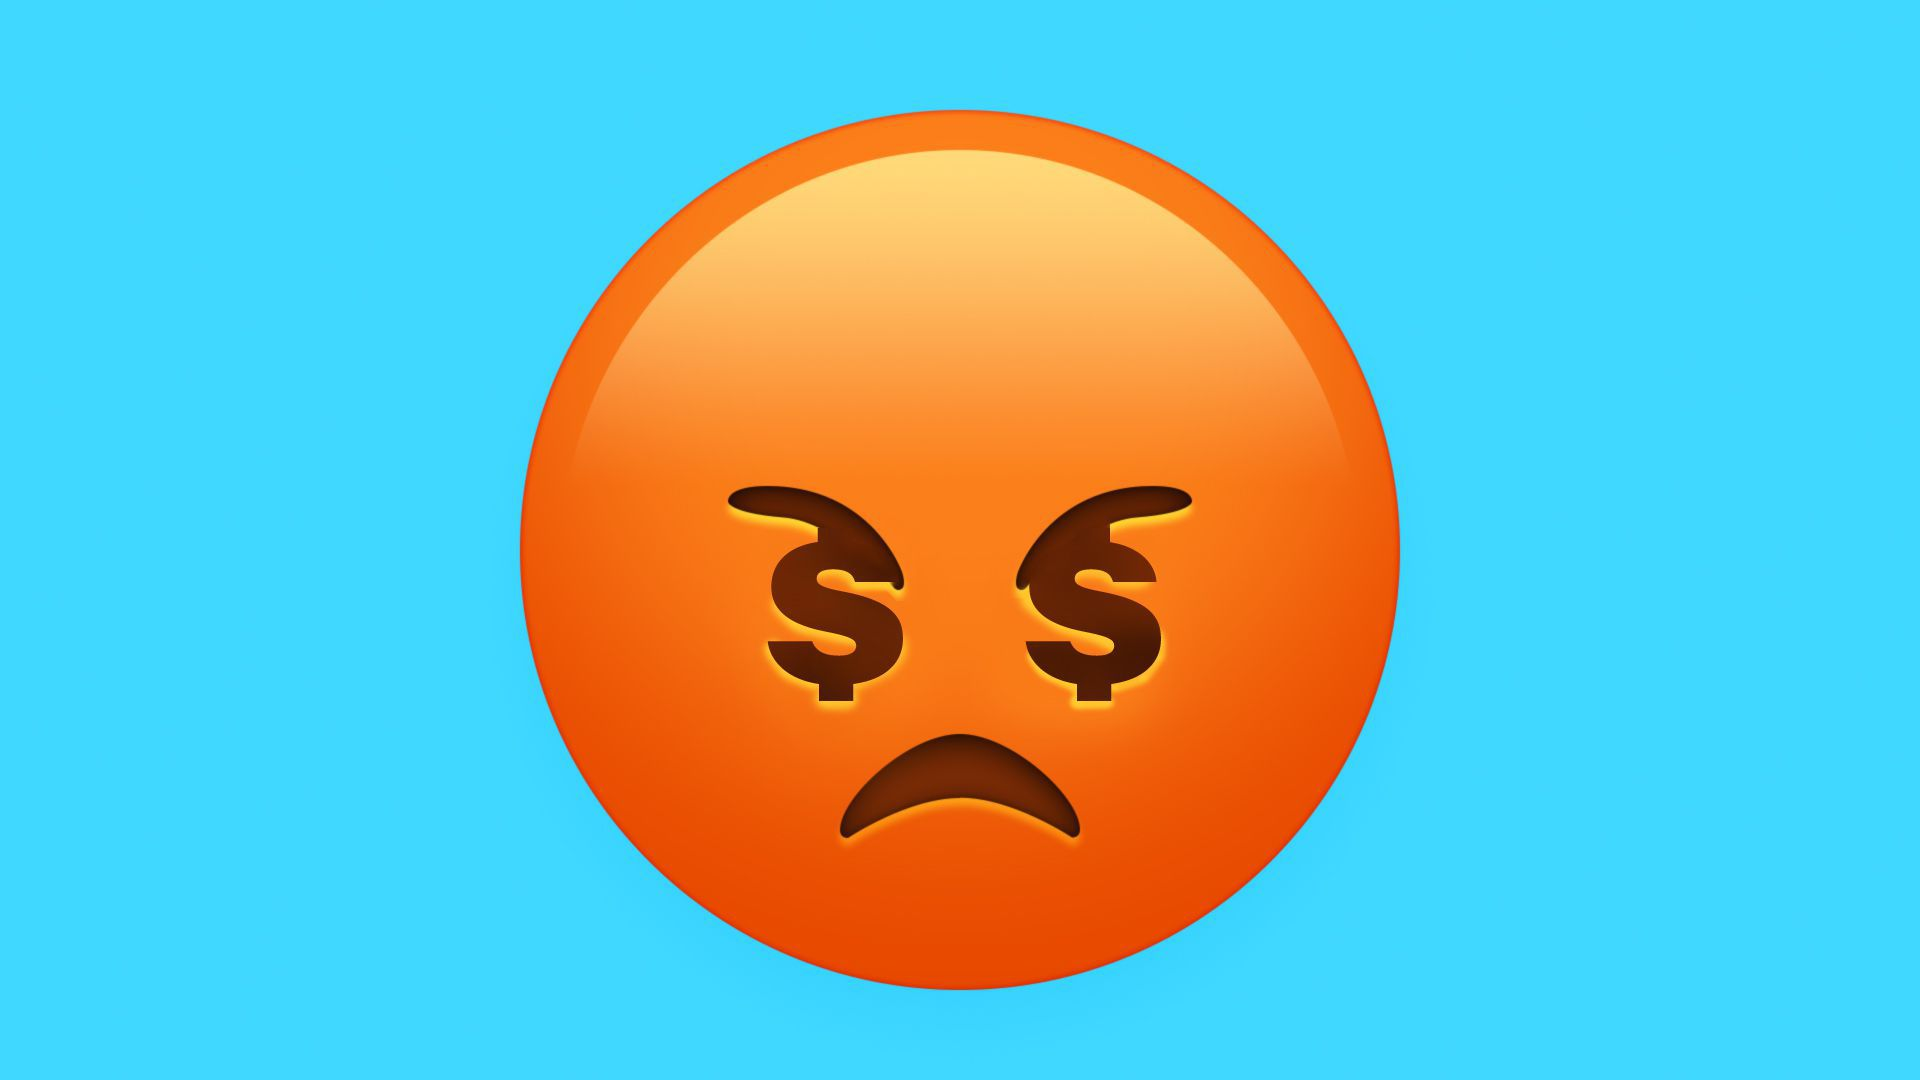 Illustration of sad face with dollar signs.